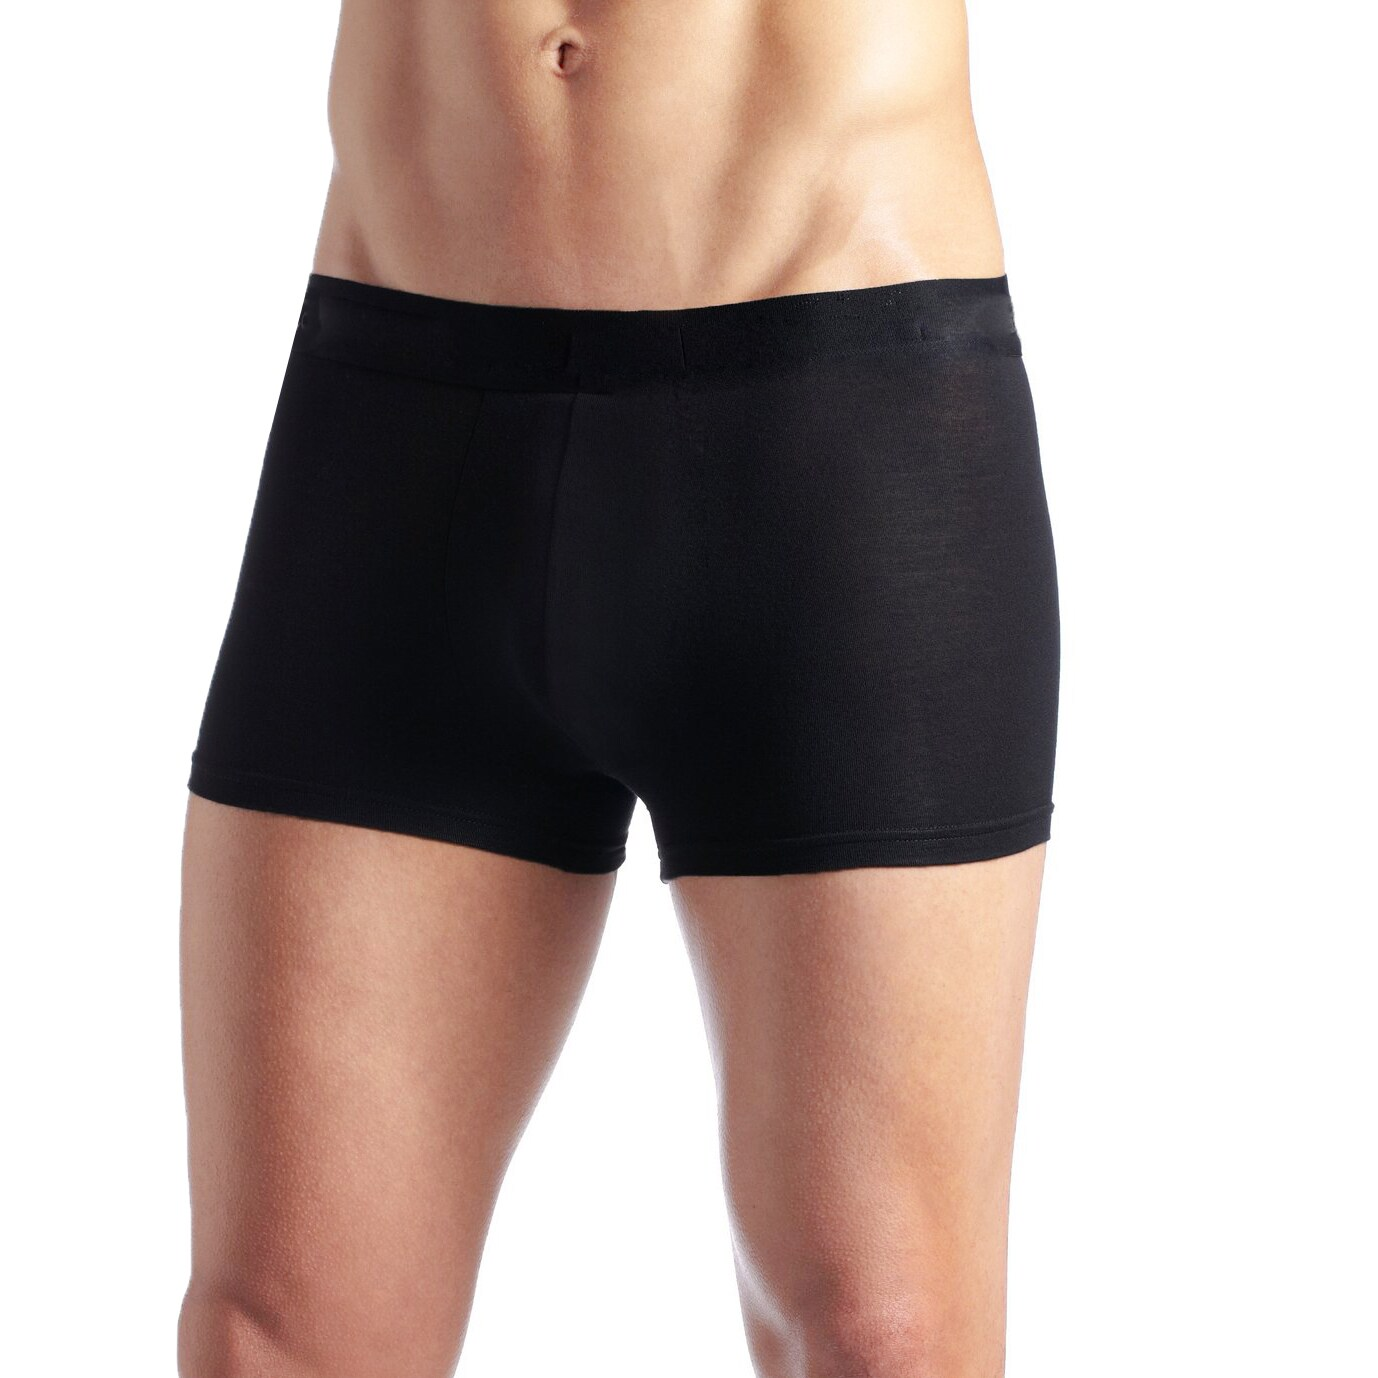 01e953a9f773 ToBeInStyle Men's Seamless Microfiber Boxer Briefs (Pack of 6) (One size)